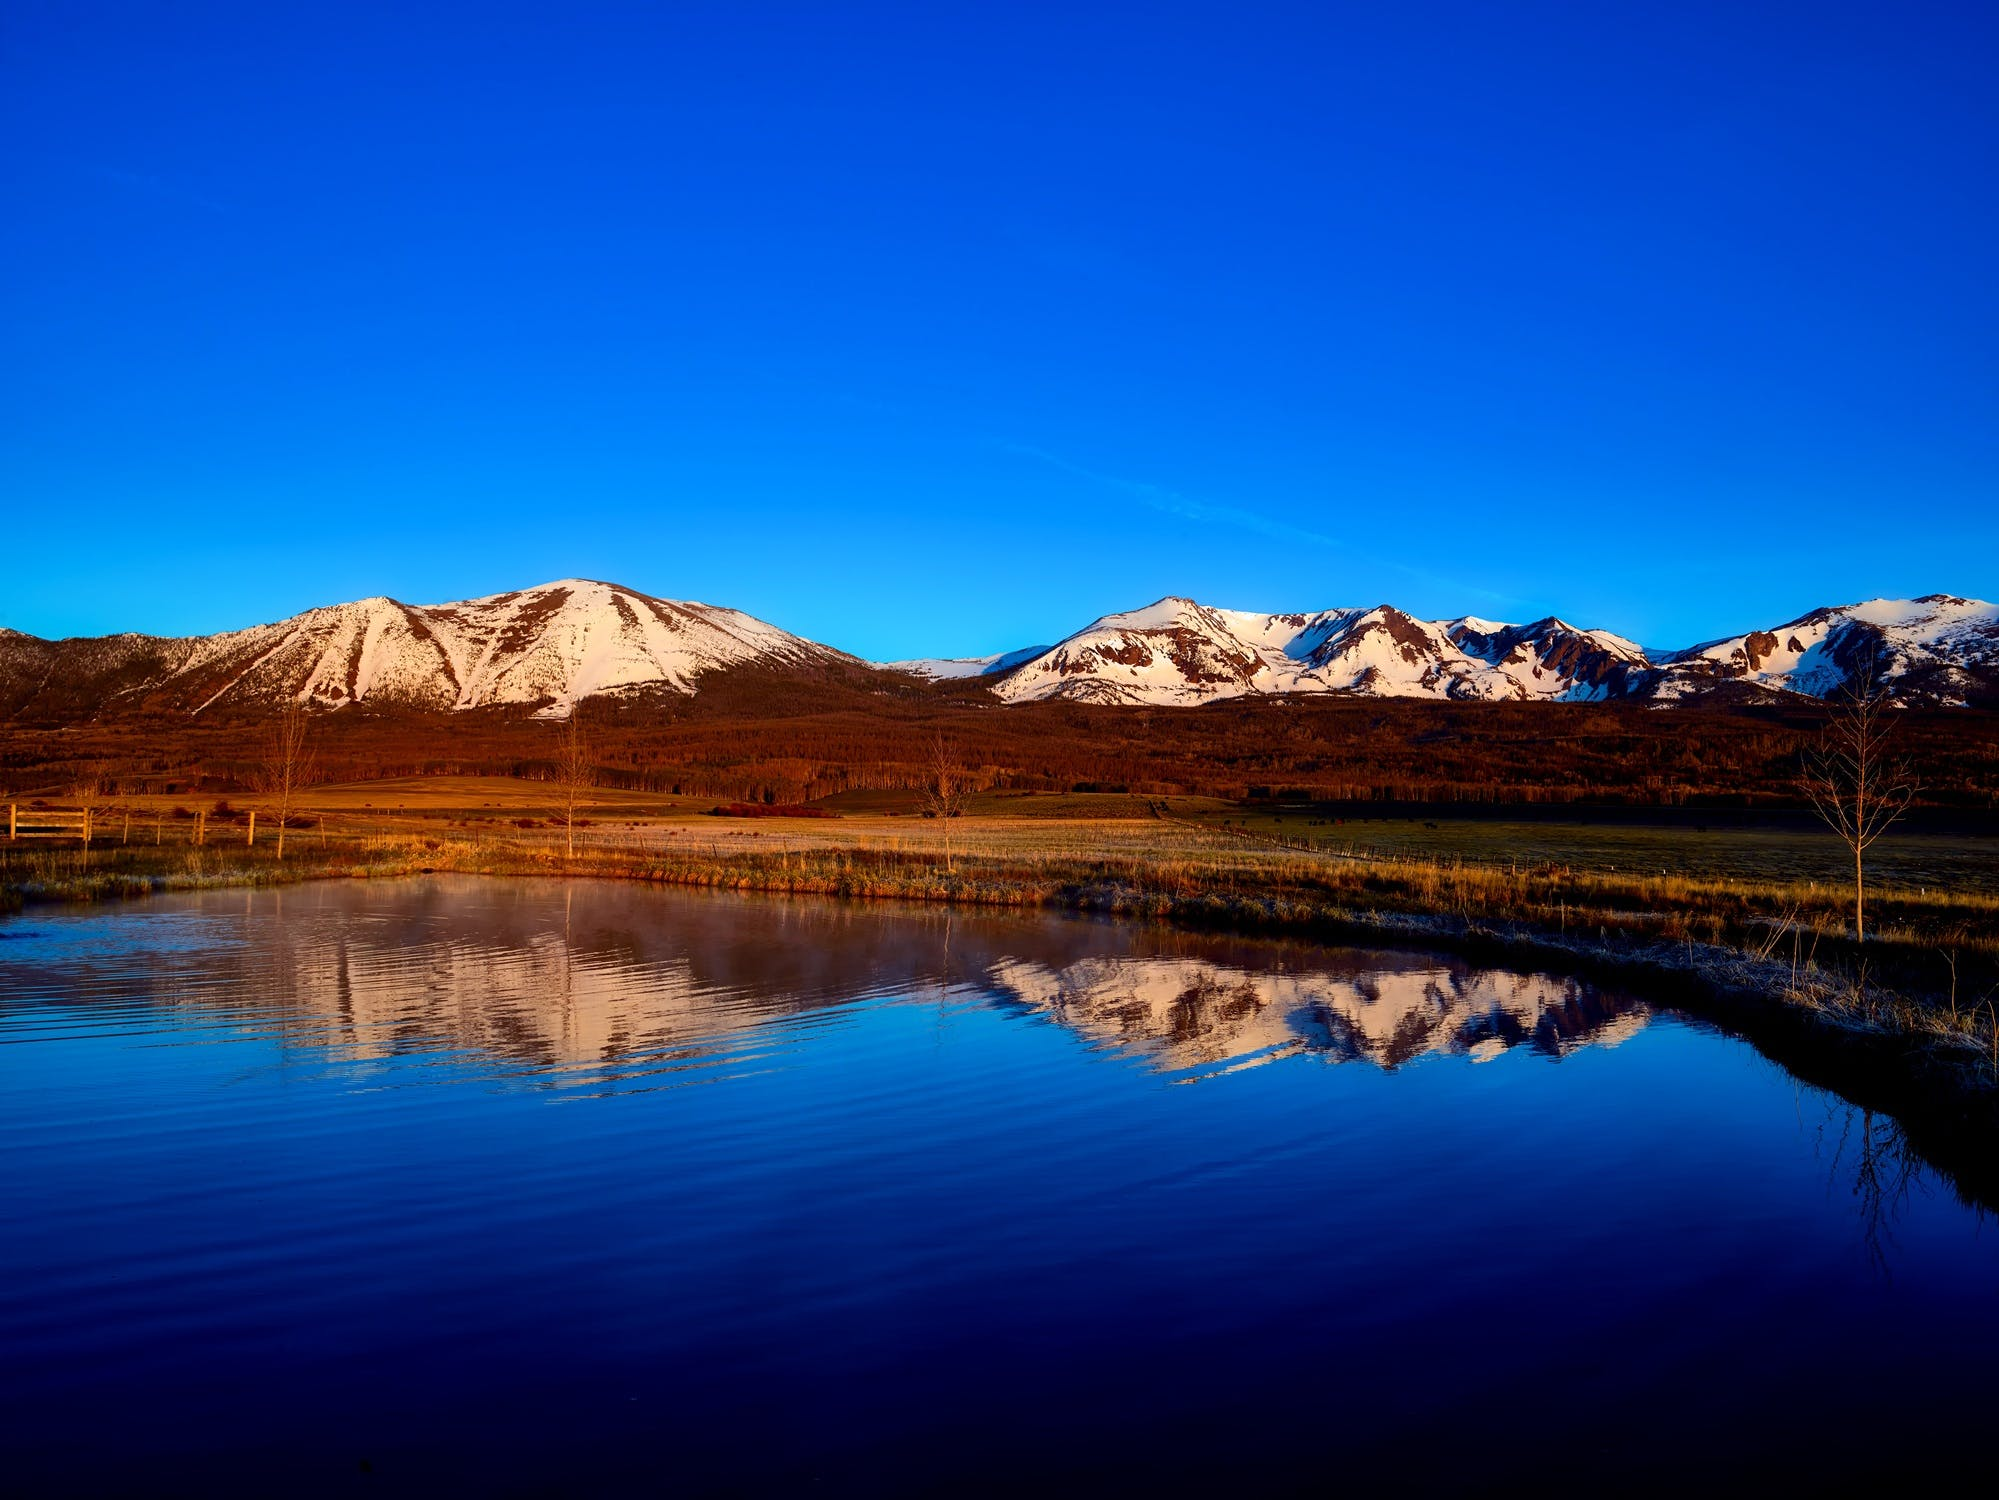 Landsdcape Photography of Brown and White Mountain